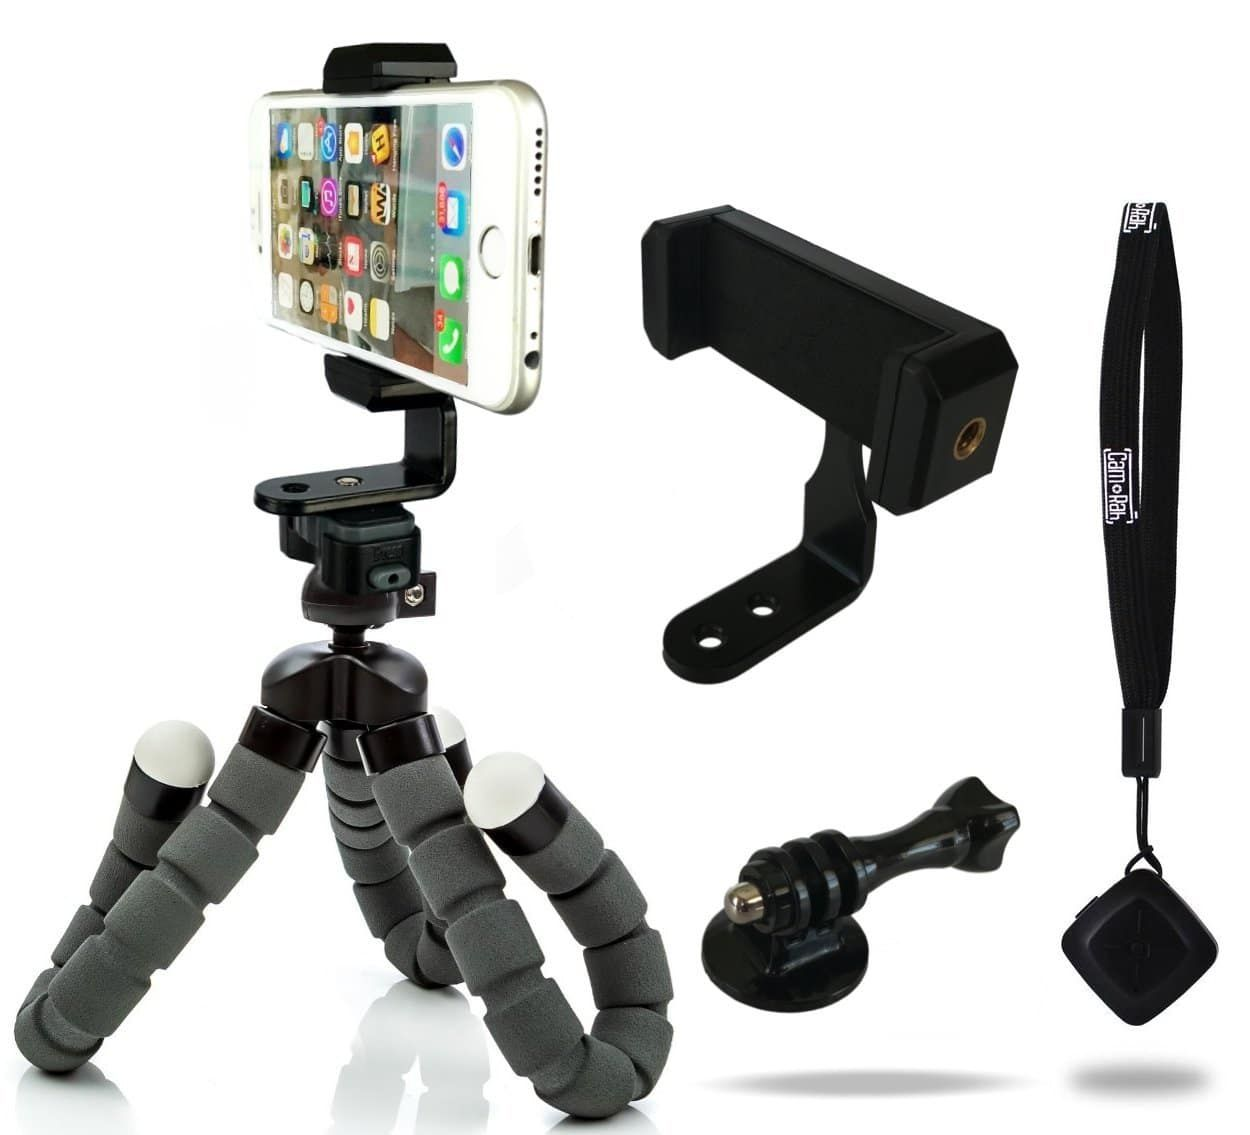 Top 7 Best Smartphone Tripods in 2020 Review Flexible